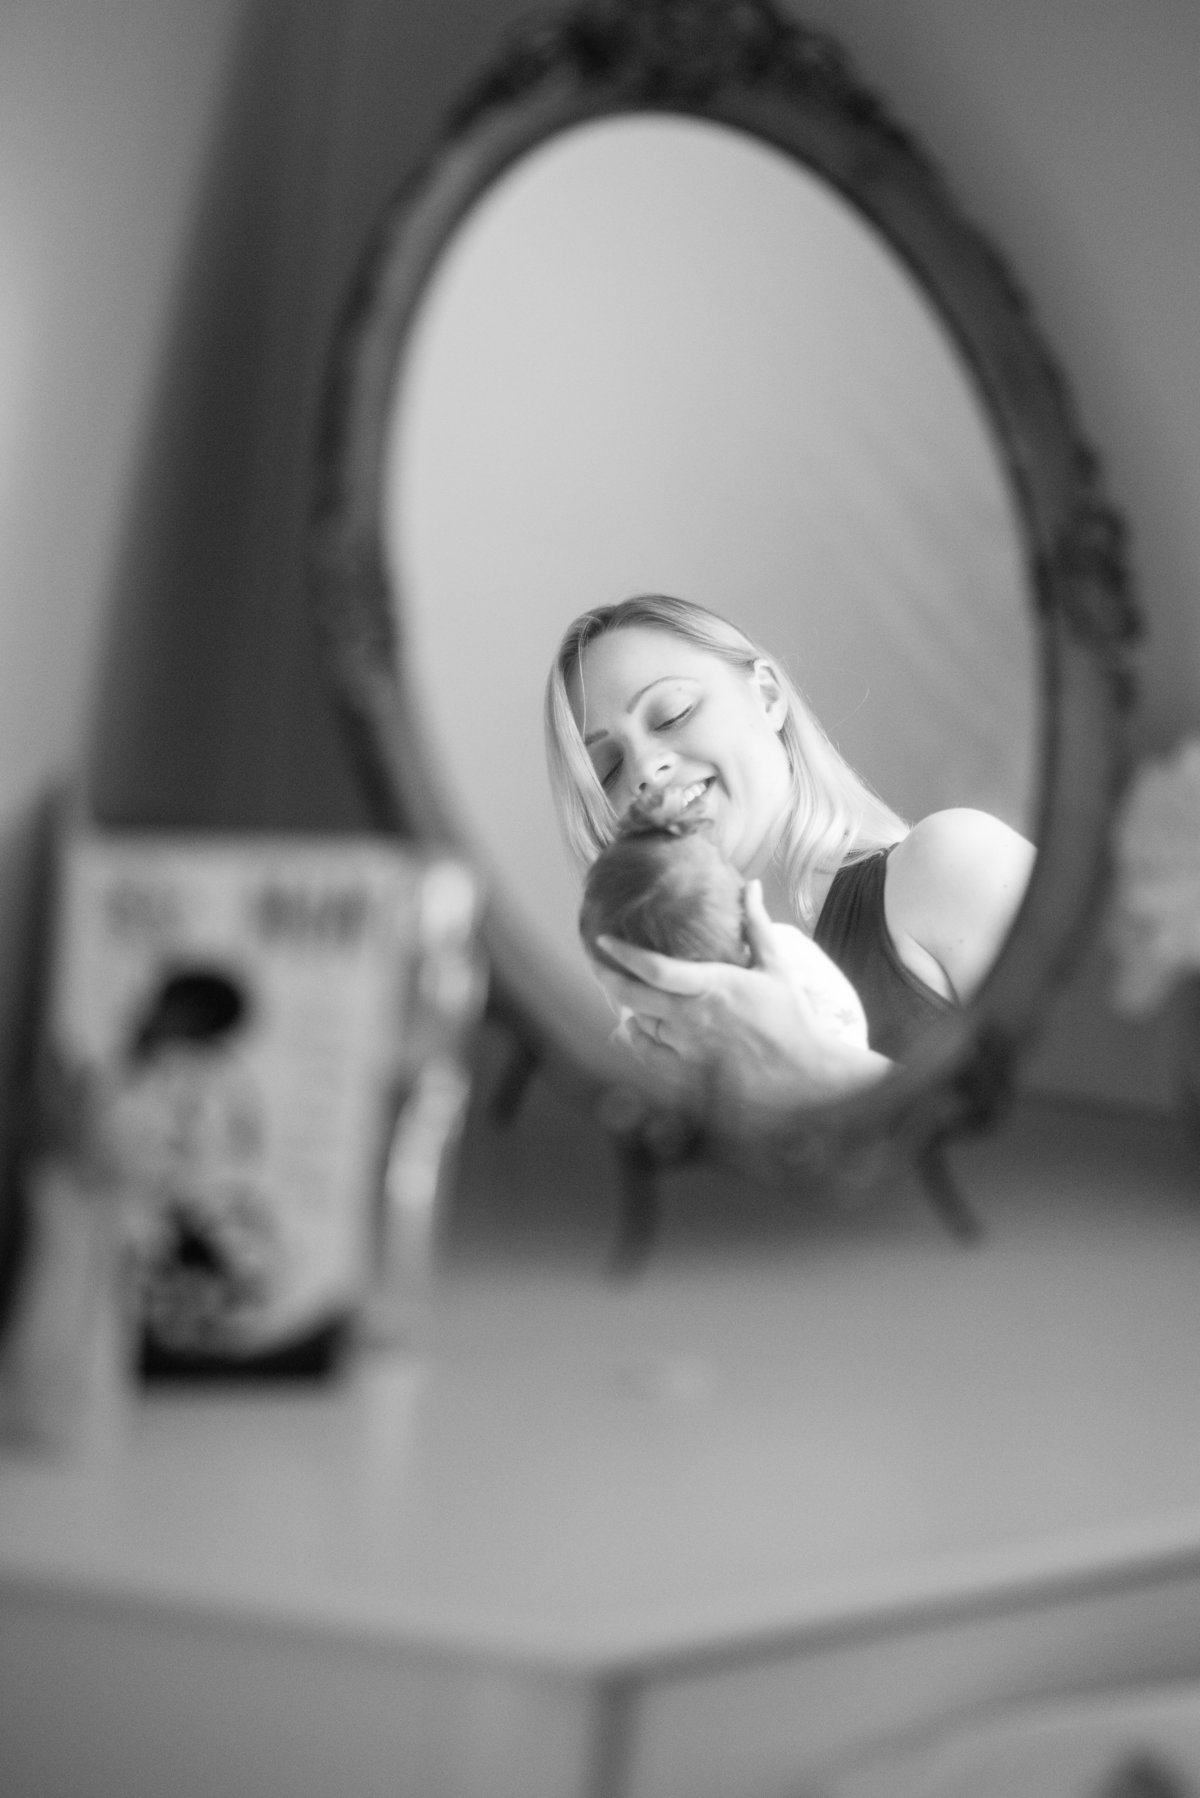 lakegeorge-saratoga-newborn-photography-lauren-kirkham-photography-2